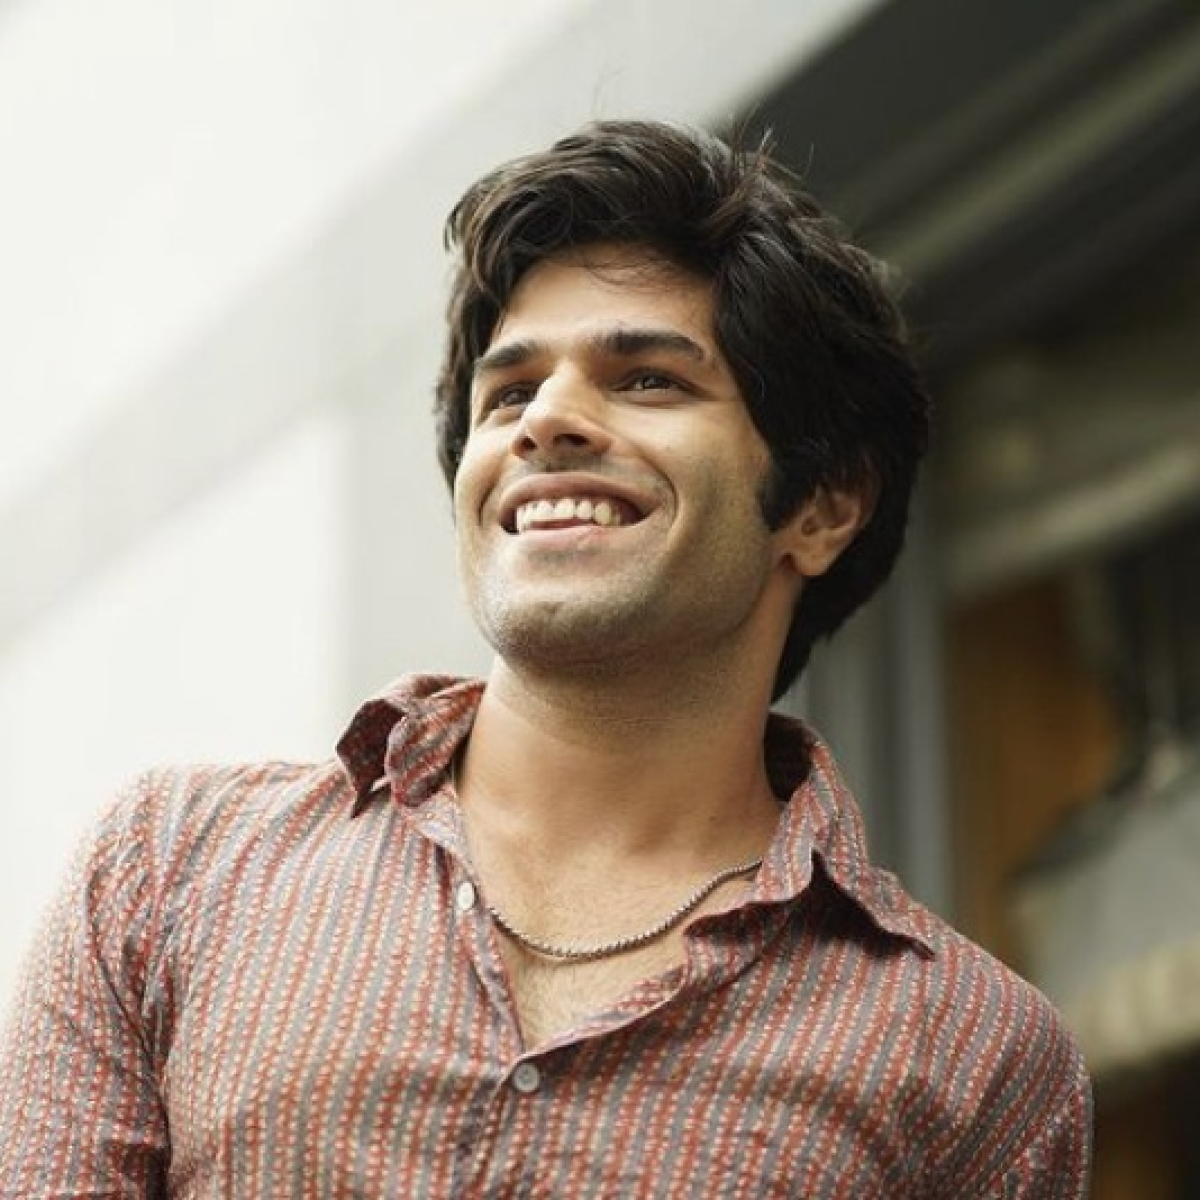 It is important to break the stigma: 'His Storyy' actor Mrinal Dutt on the need for change in perception towards gay couples